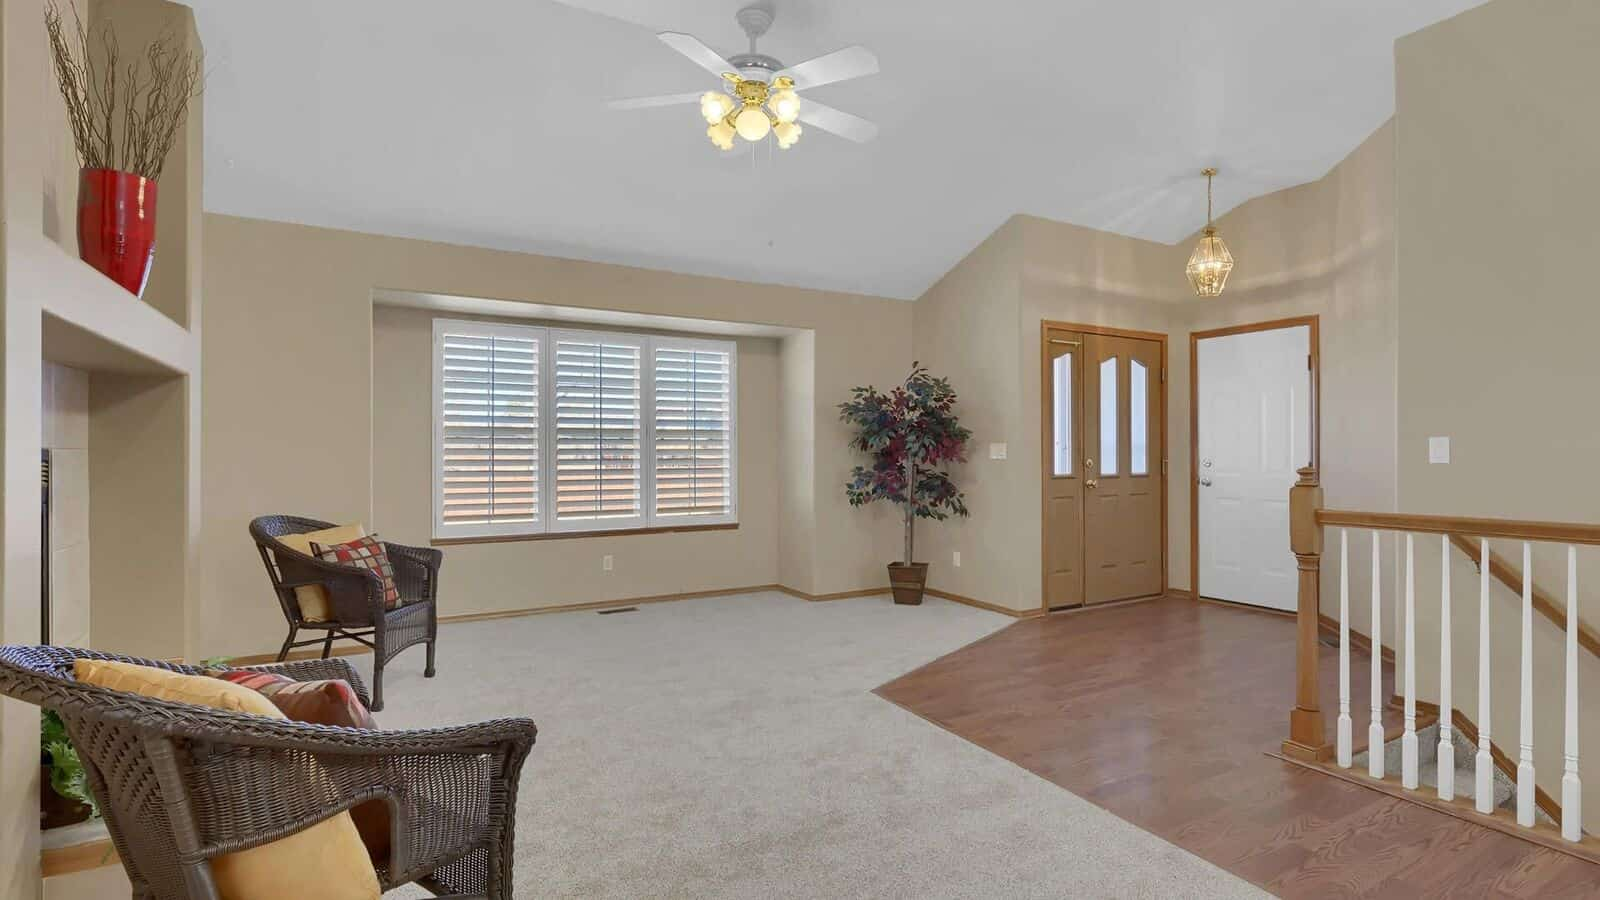 Entry into Living Room and Dining Room